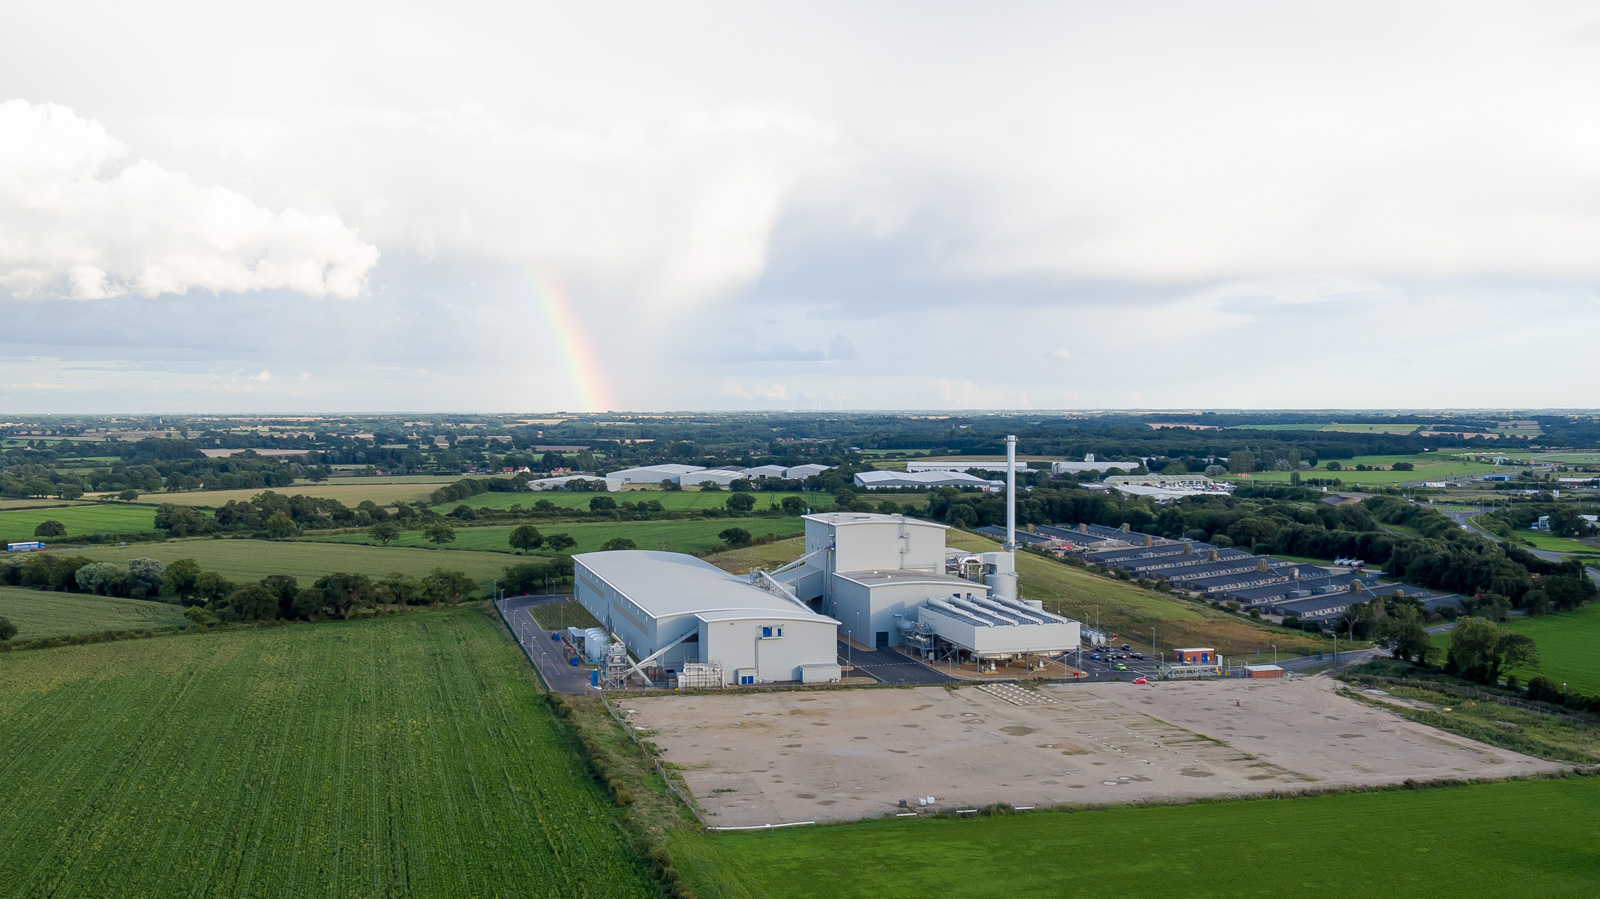 Snetterton Biomass Power Plant